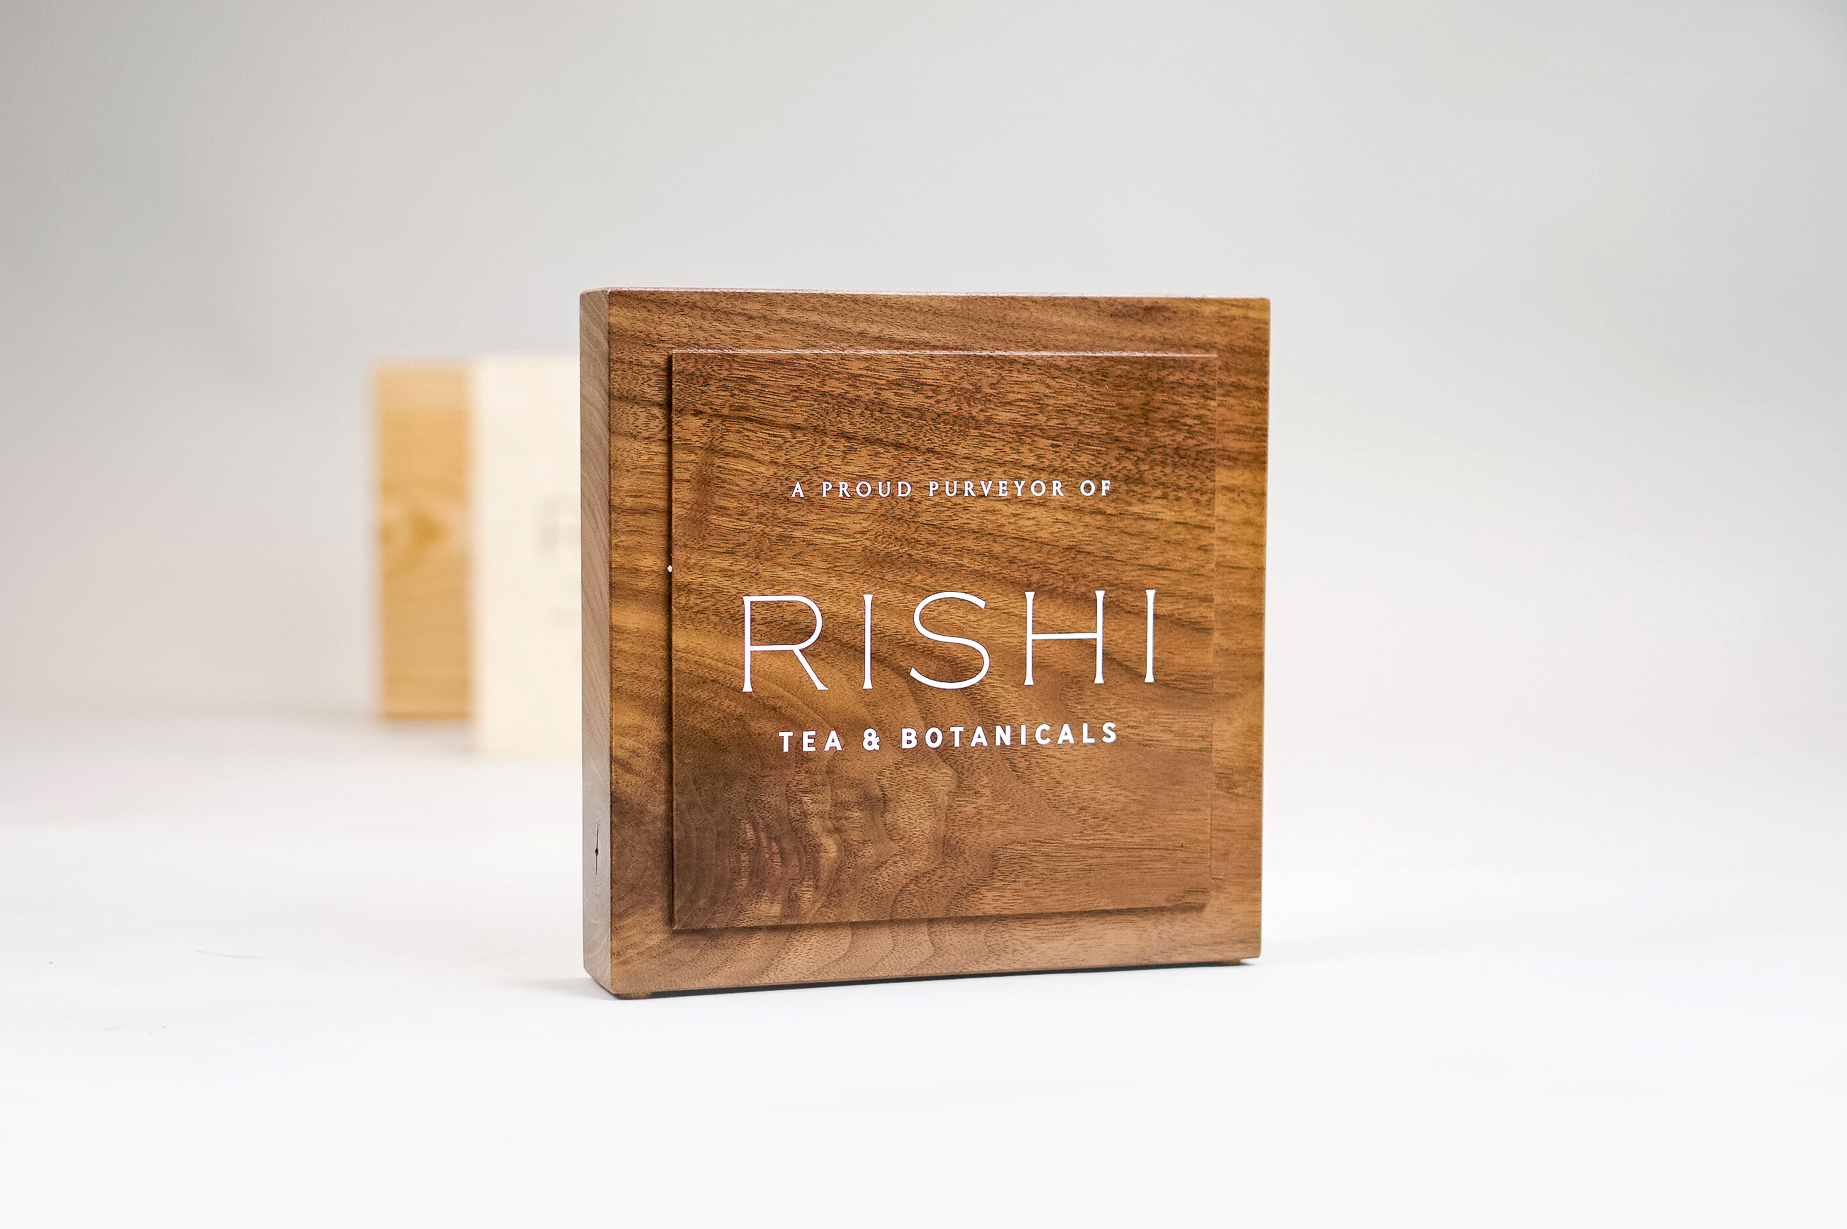 Solid walnut retail/cafe sign with white artwork for RIshi, a Direct Trade importer of organic teas and botanicals from the very best sources.